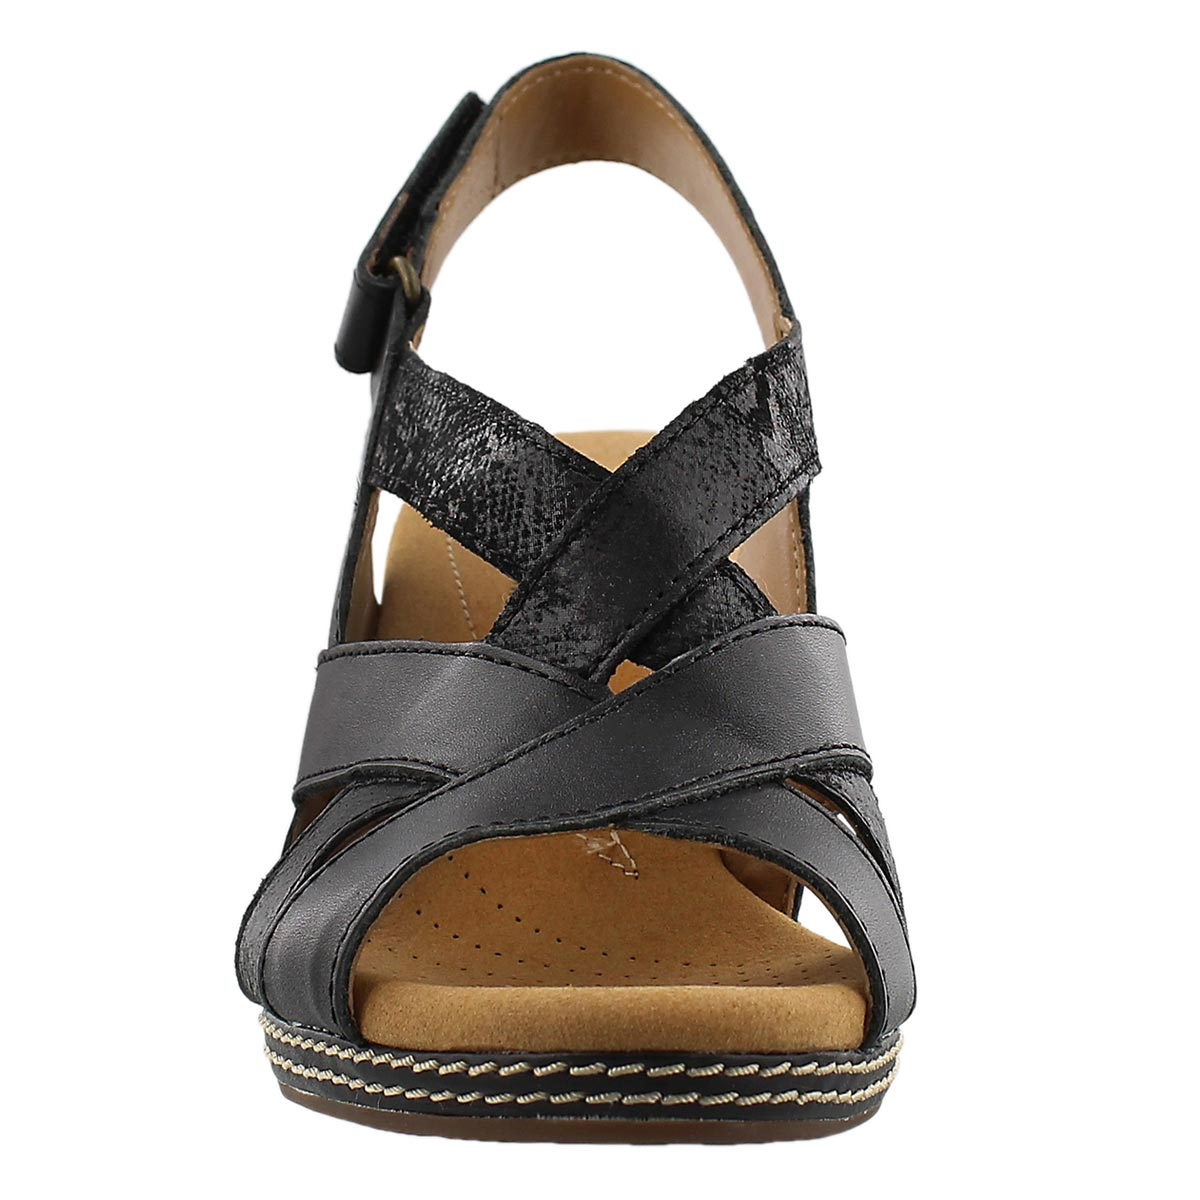 Lds Helio Coral black wedge sandal